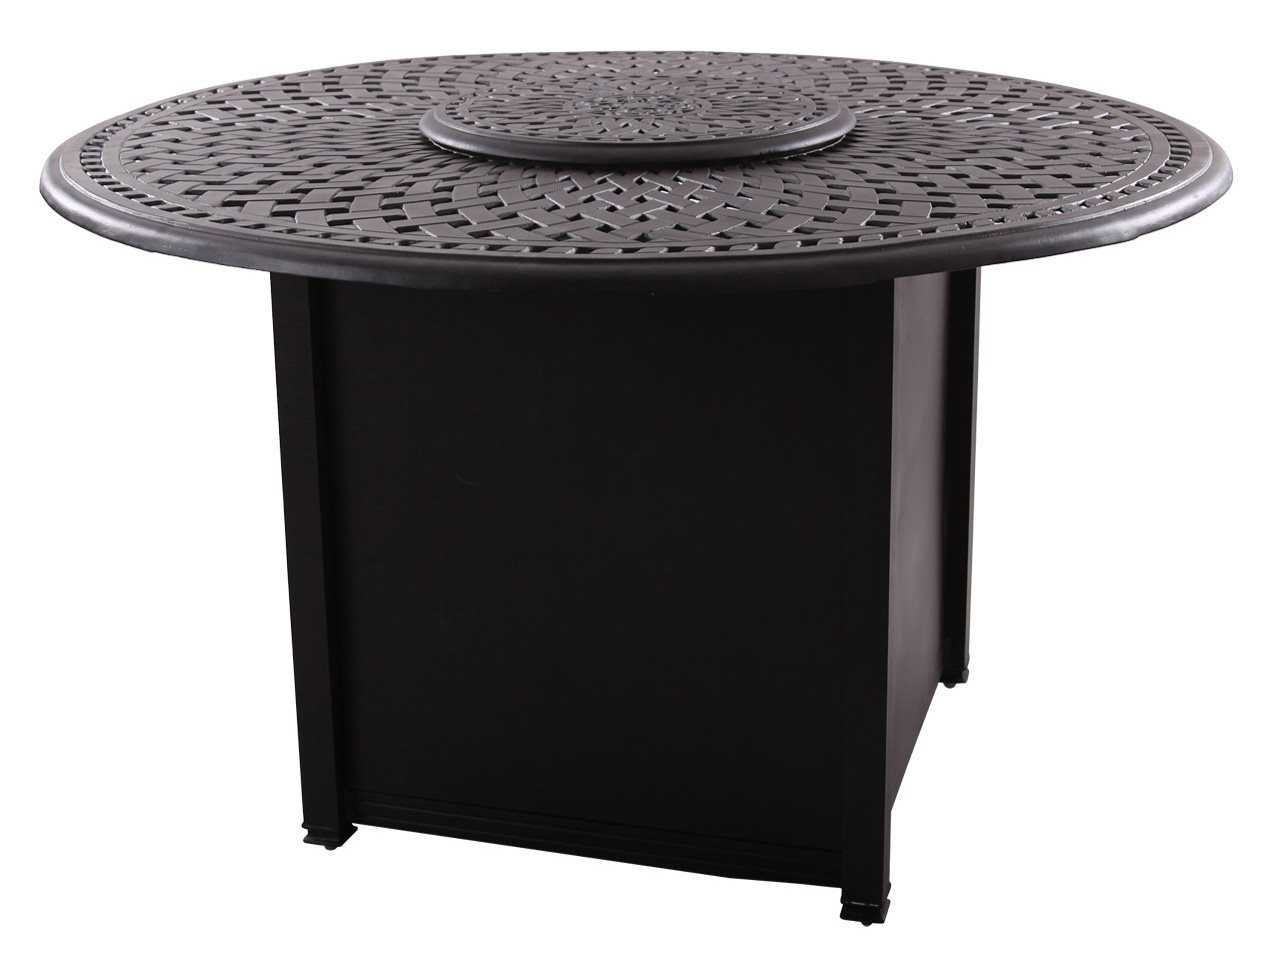 Darlee outdoor living series 60 cast aluminum 60 round for Black patio table